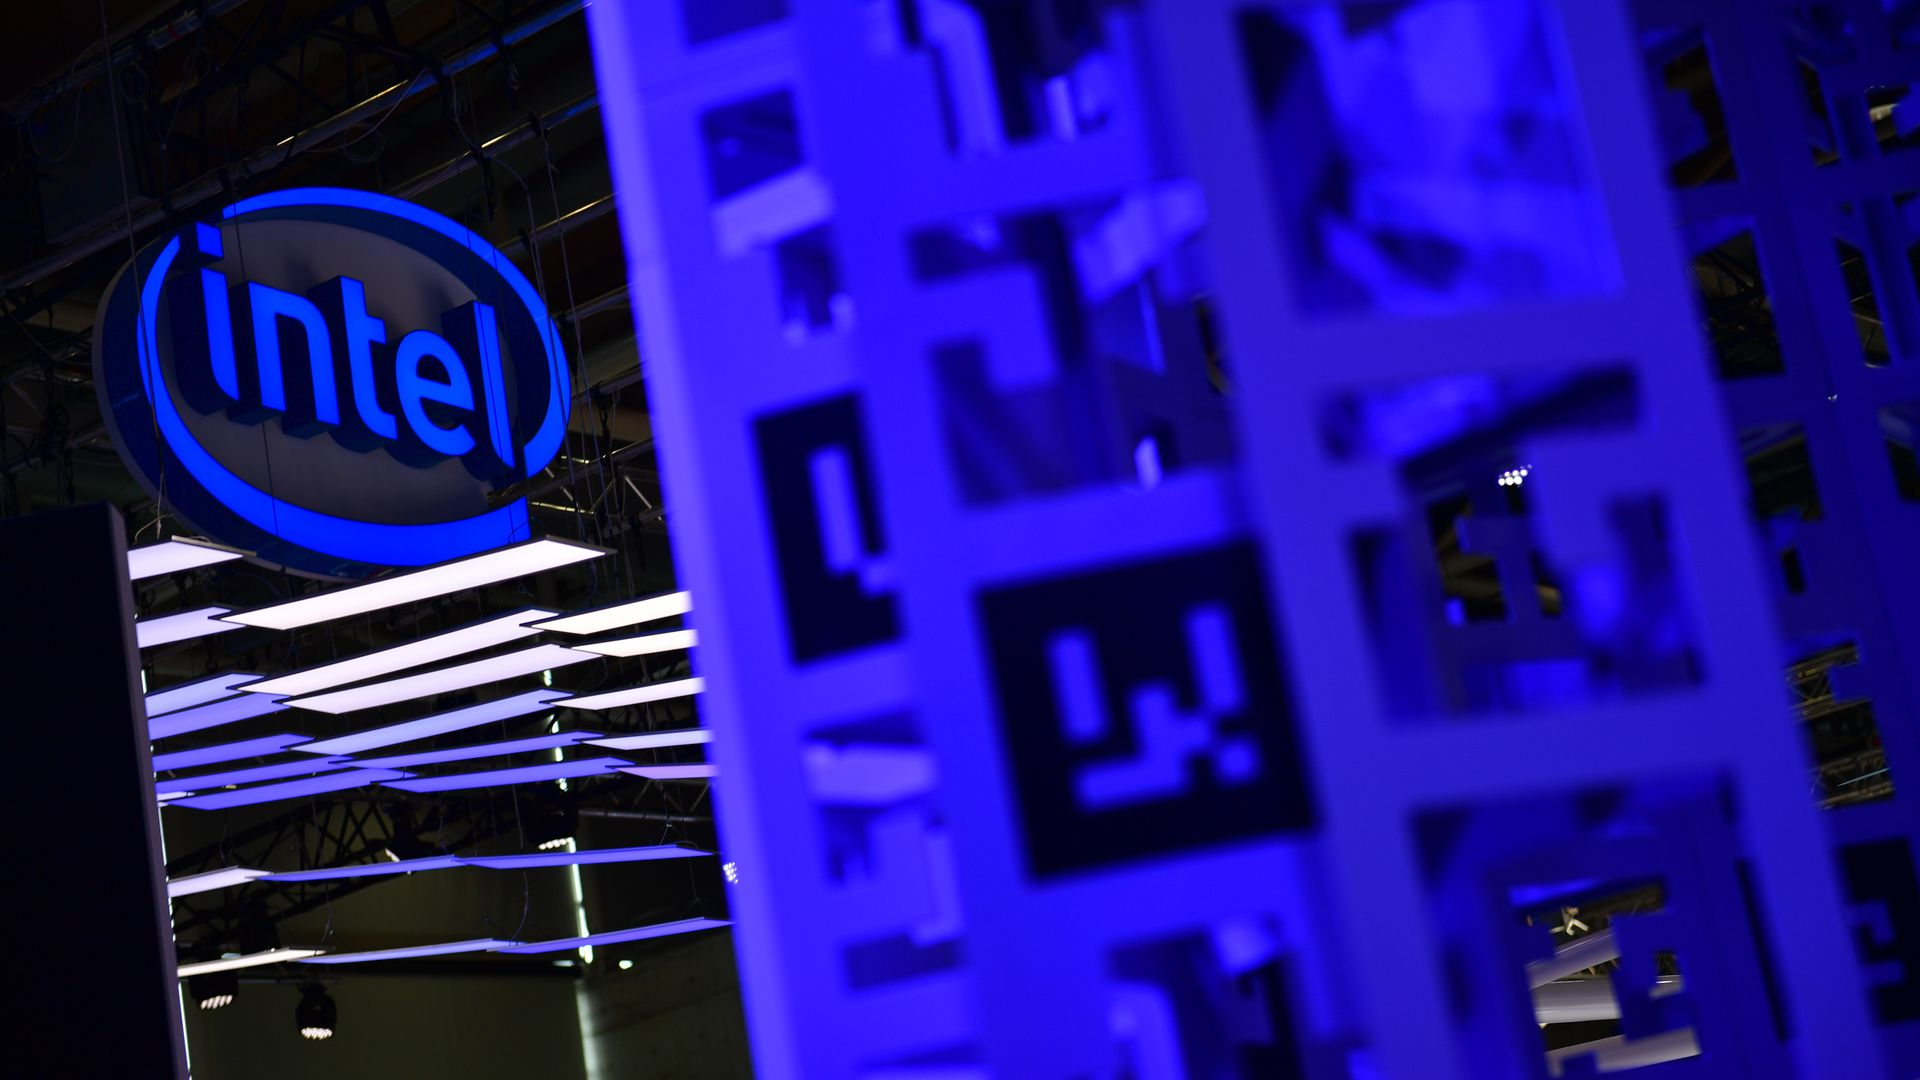 Intel logo in blue.